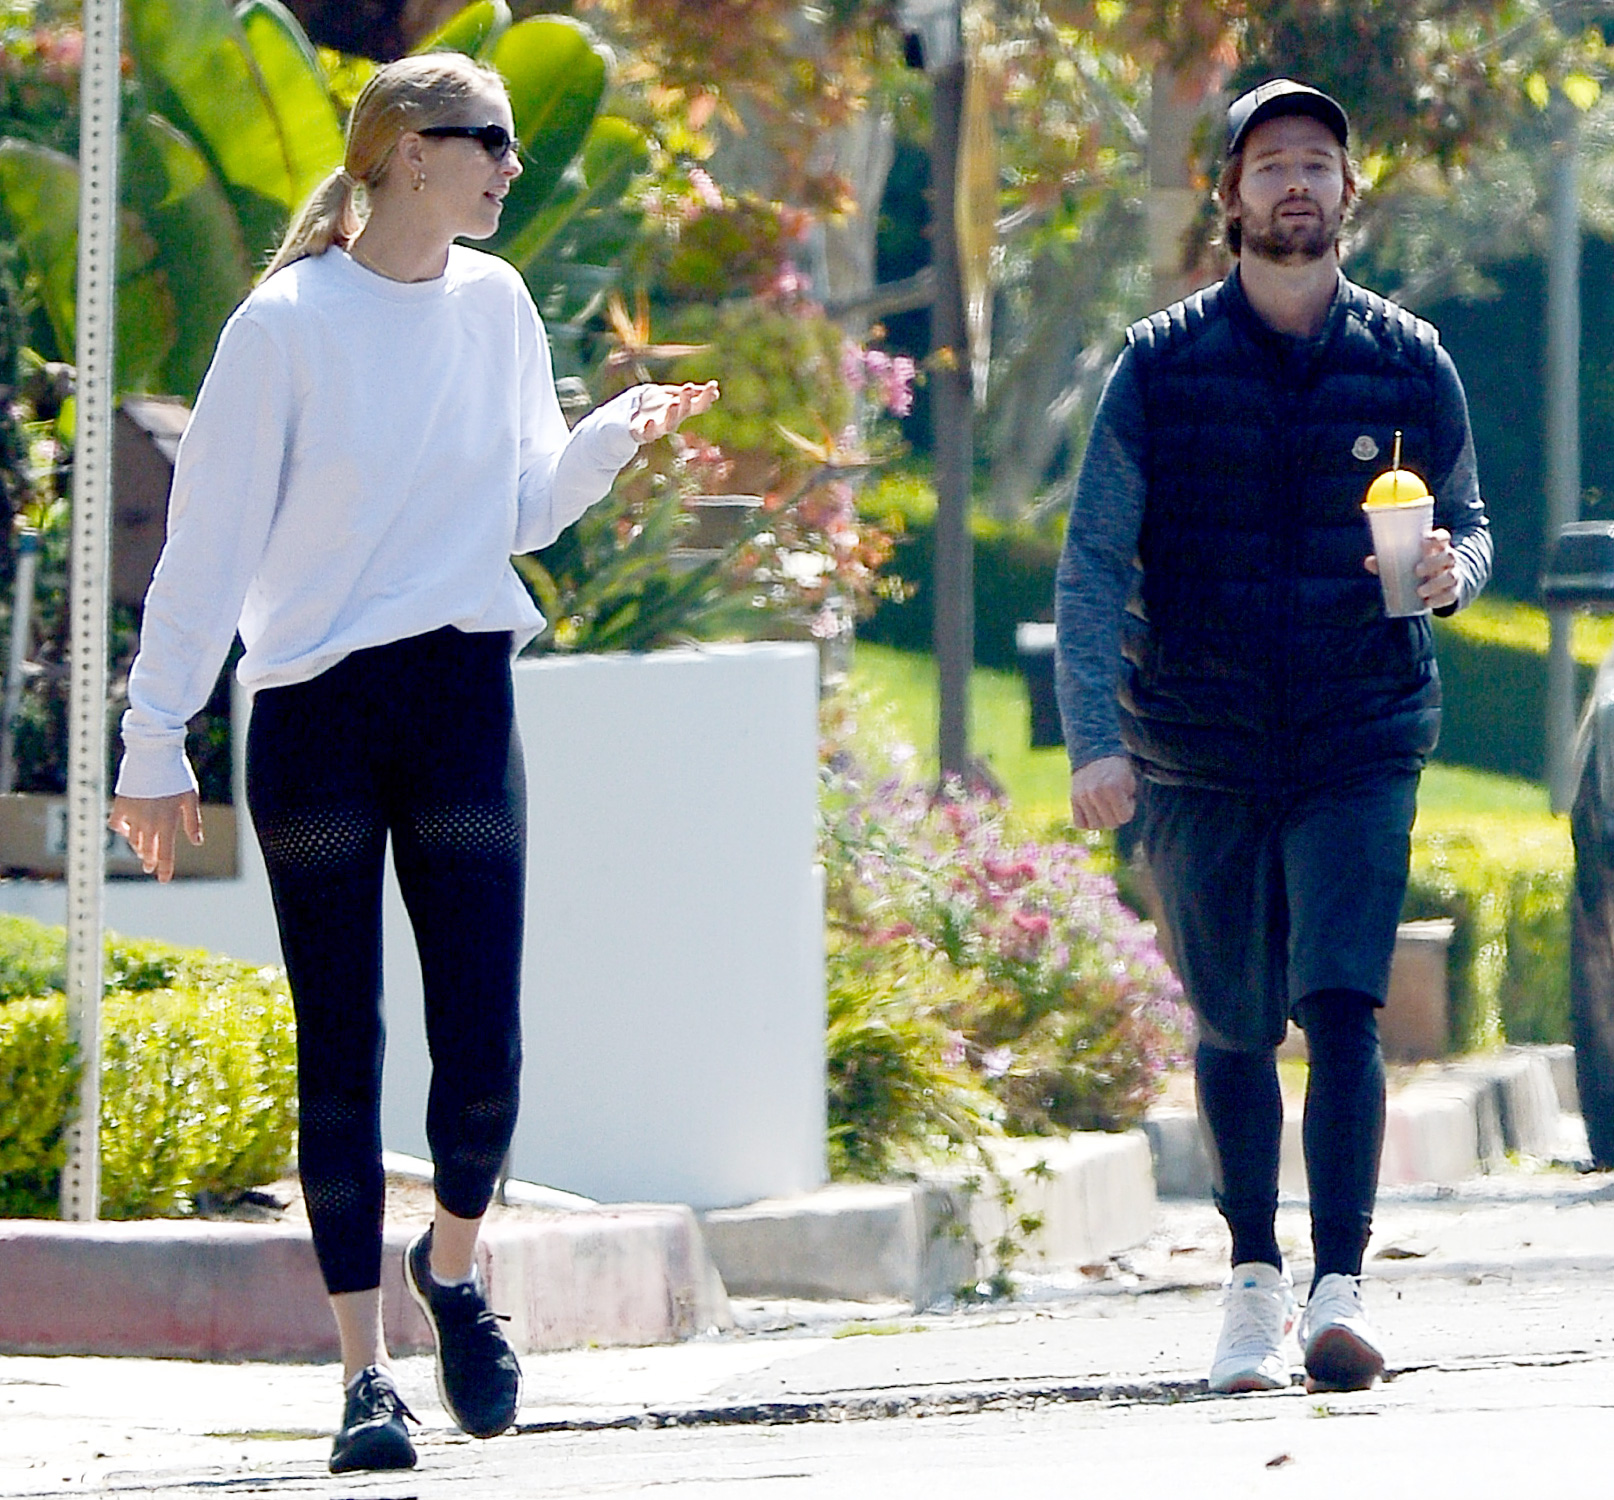 Patrick Schwarzenegger and Girlfriend Abby Champion go for a Walk During Mandatory Quarantine in California.